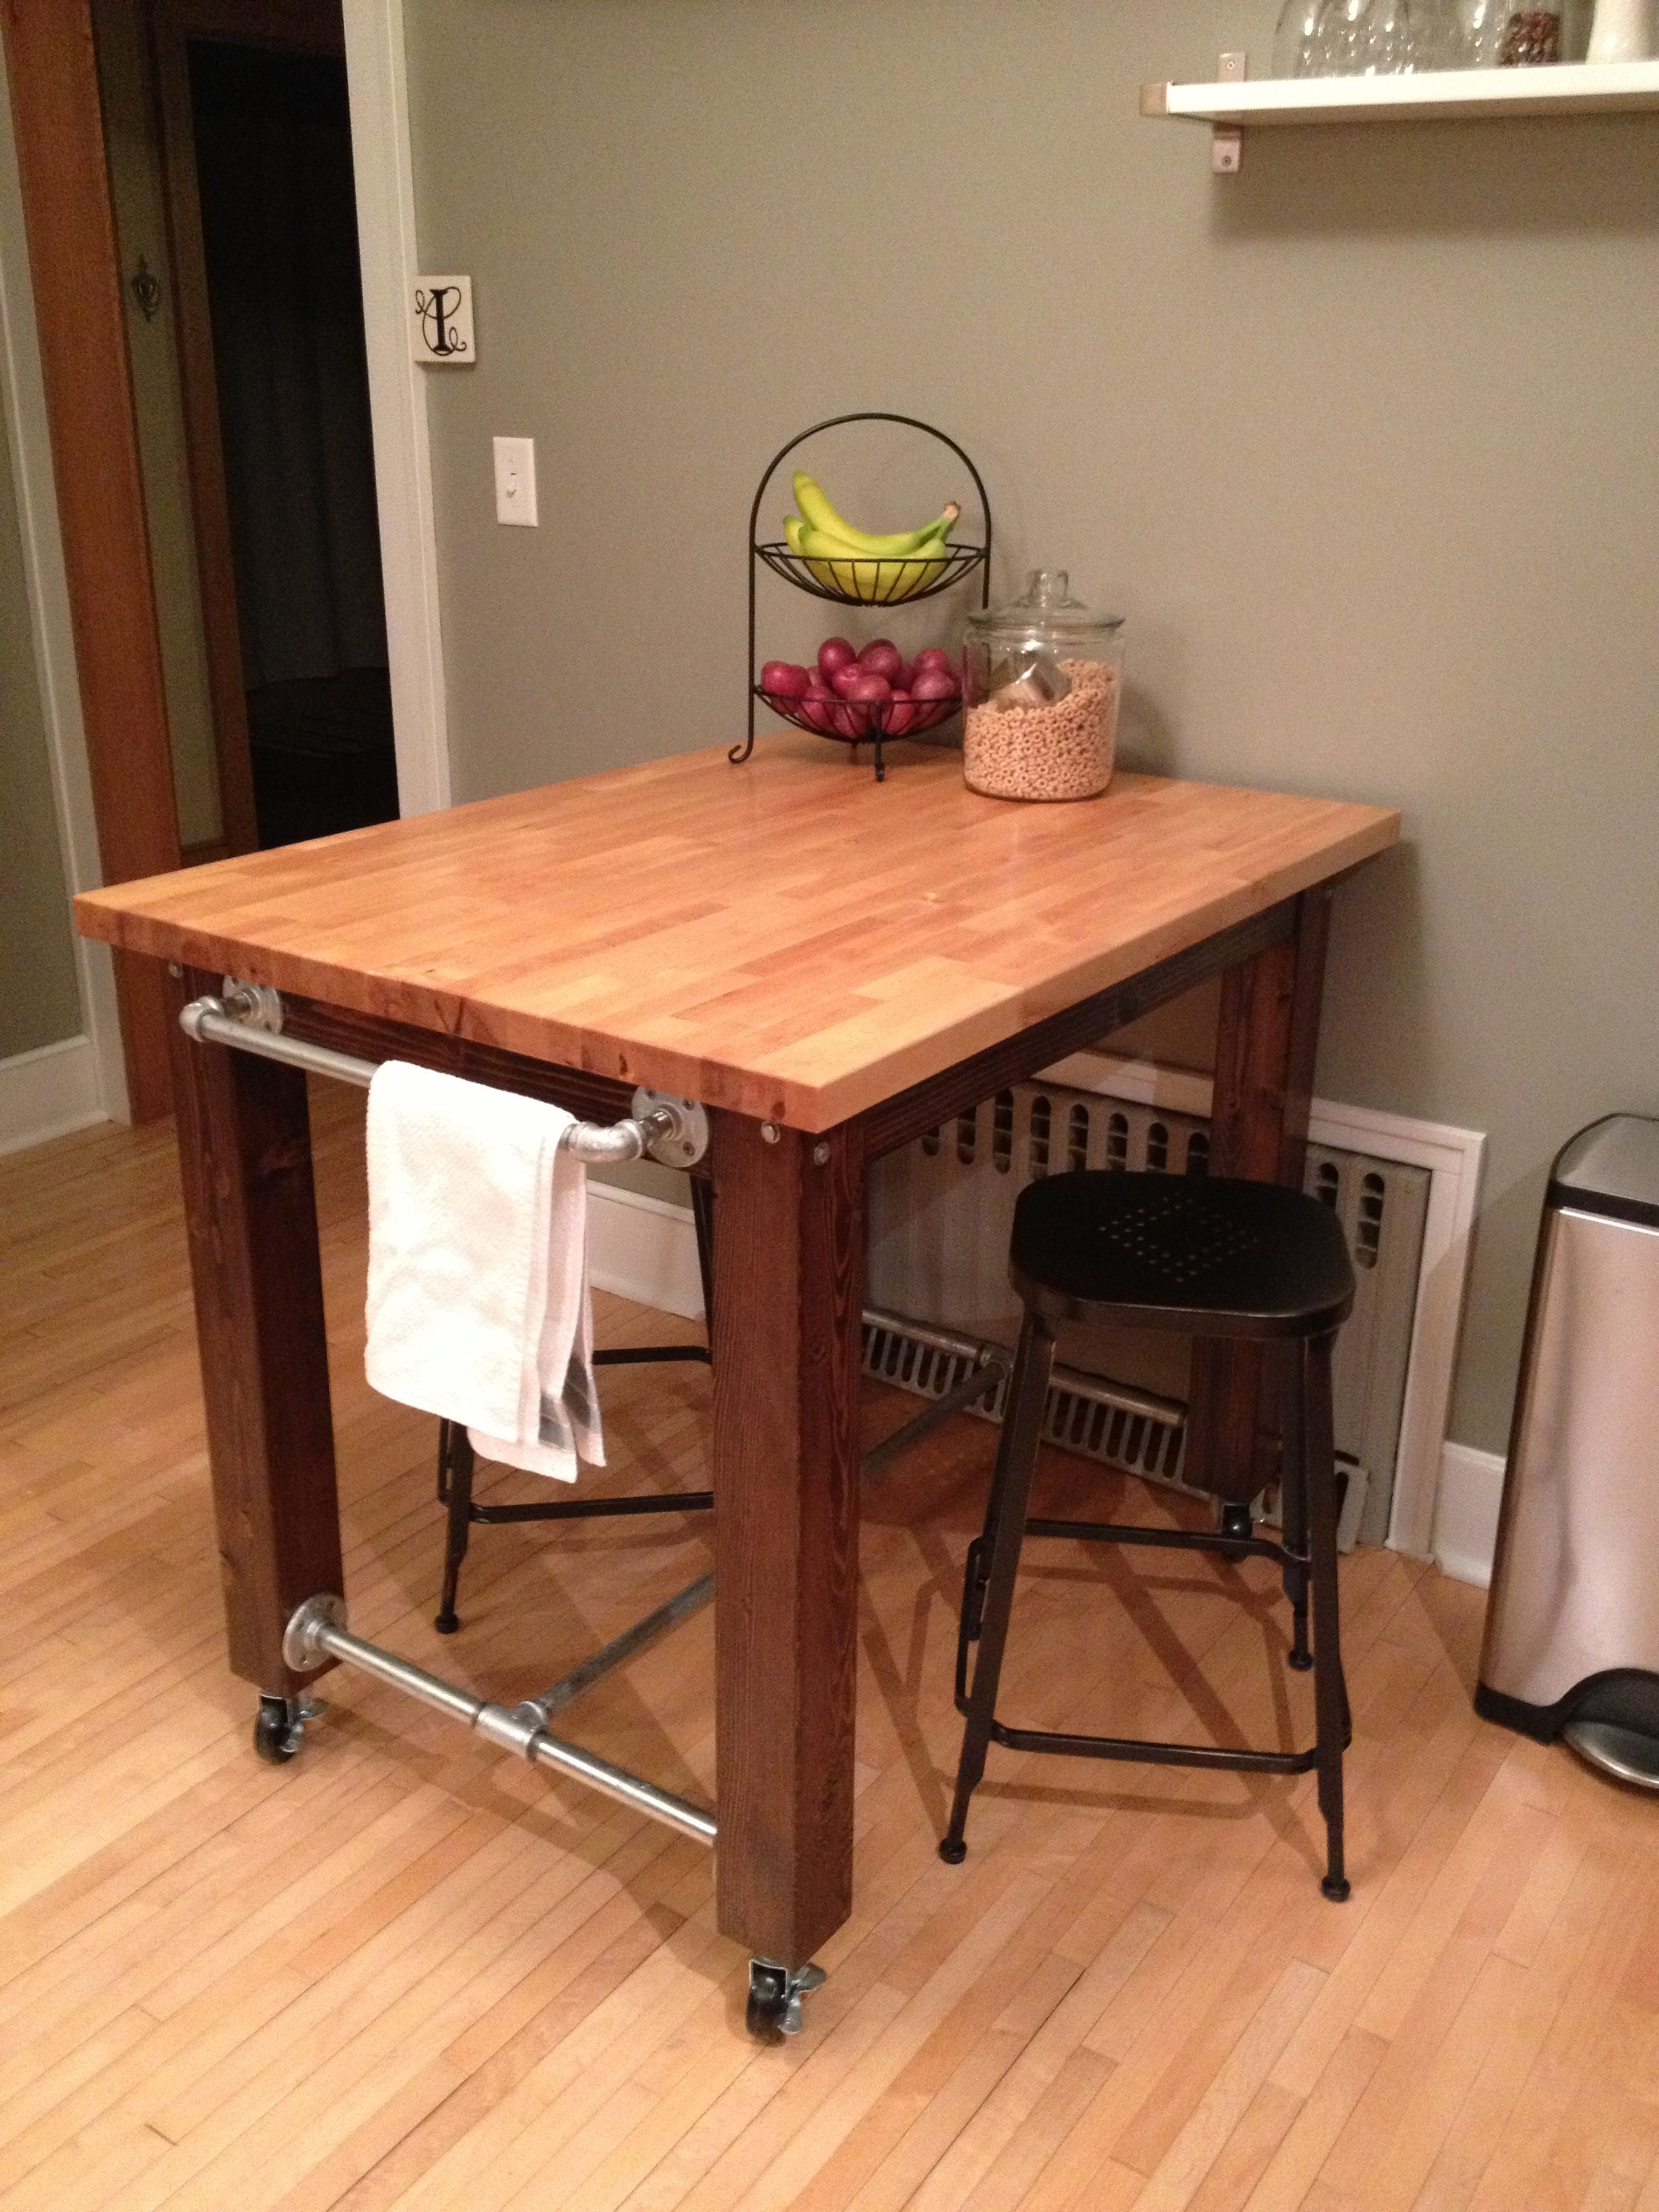 kitchen table tops decorating cabinets island we built from scratch 4x4s a little stain